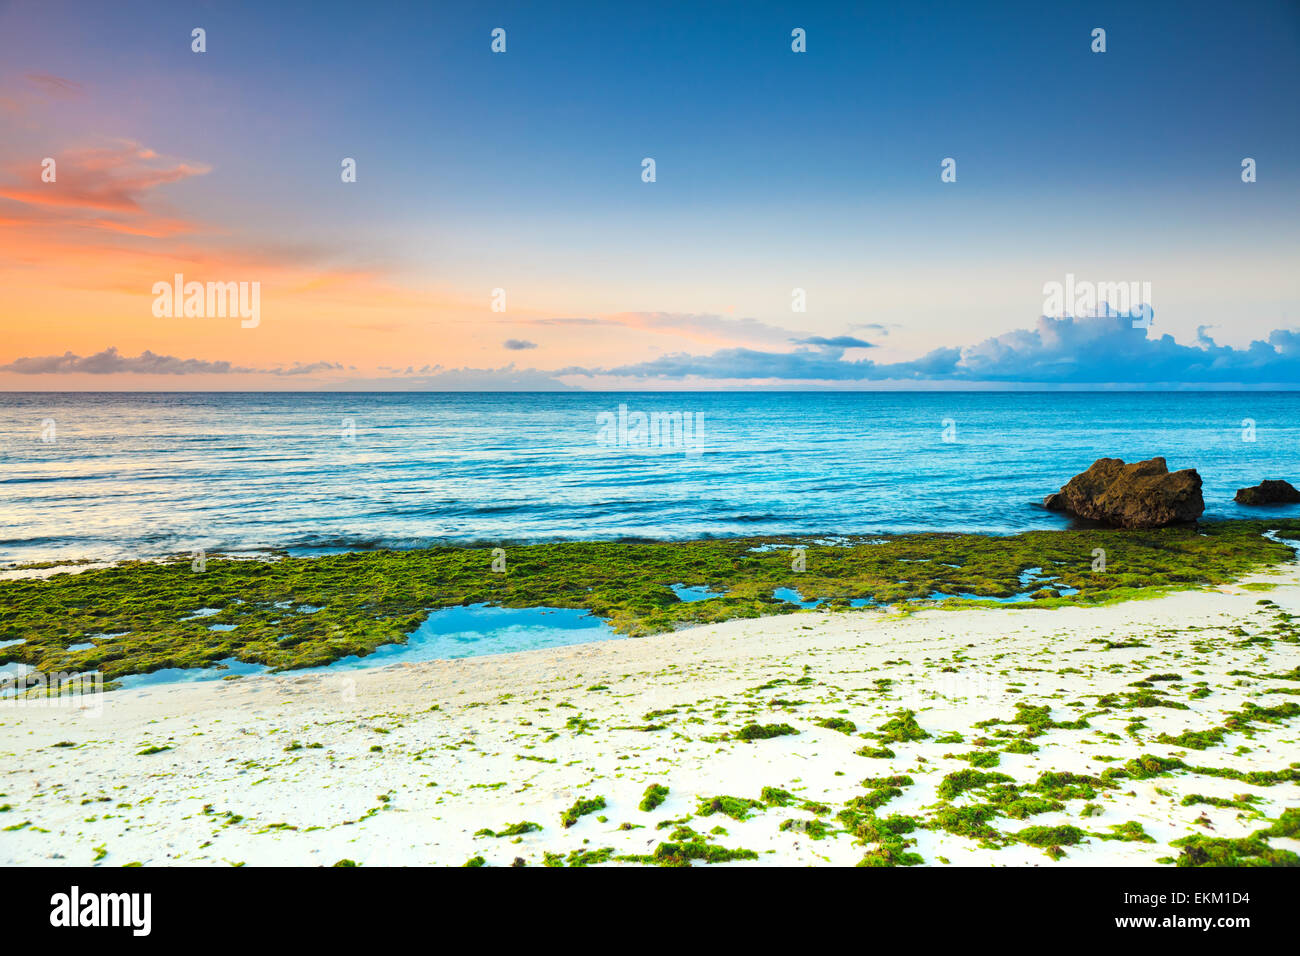 Sunrise over the sea. Stone on the foreground - Stock Image